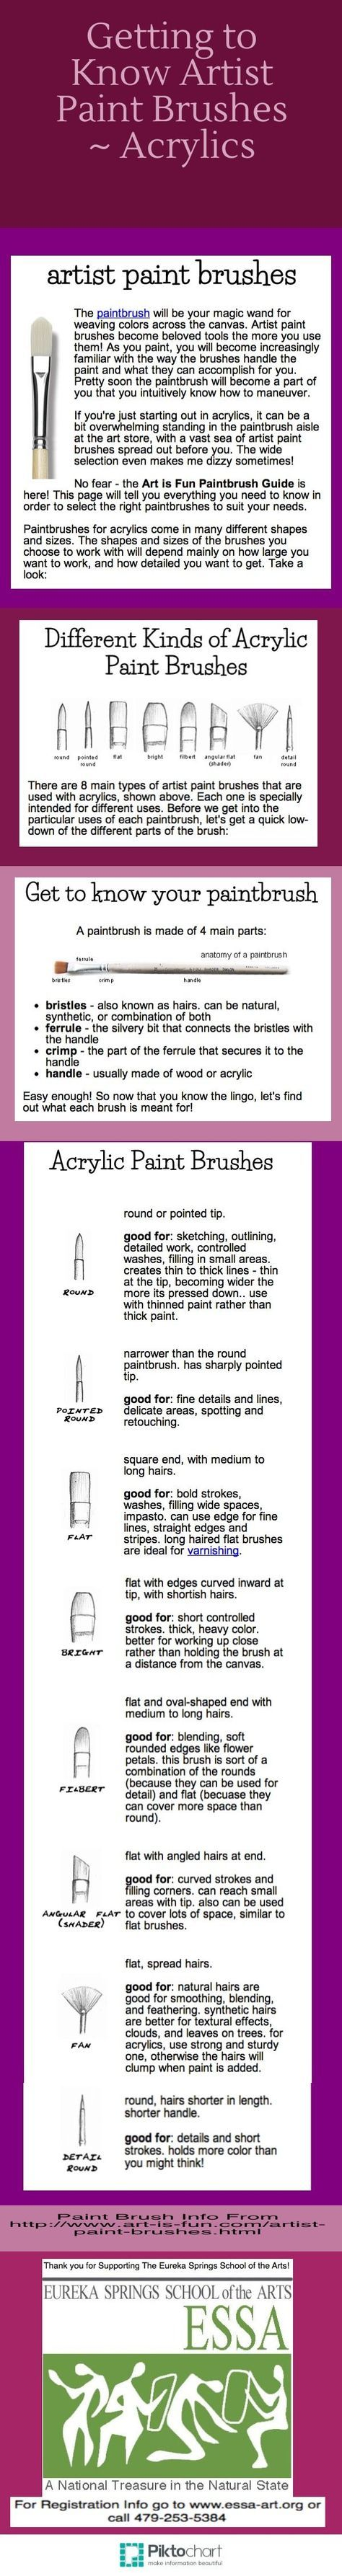 Folk art color chart acrylic paint - Great Tips On Getting To Know Acrylic Paint Brushes From Http Www